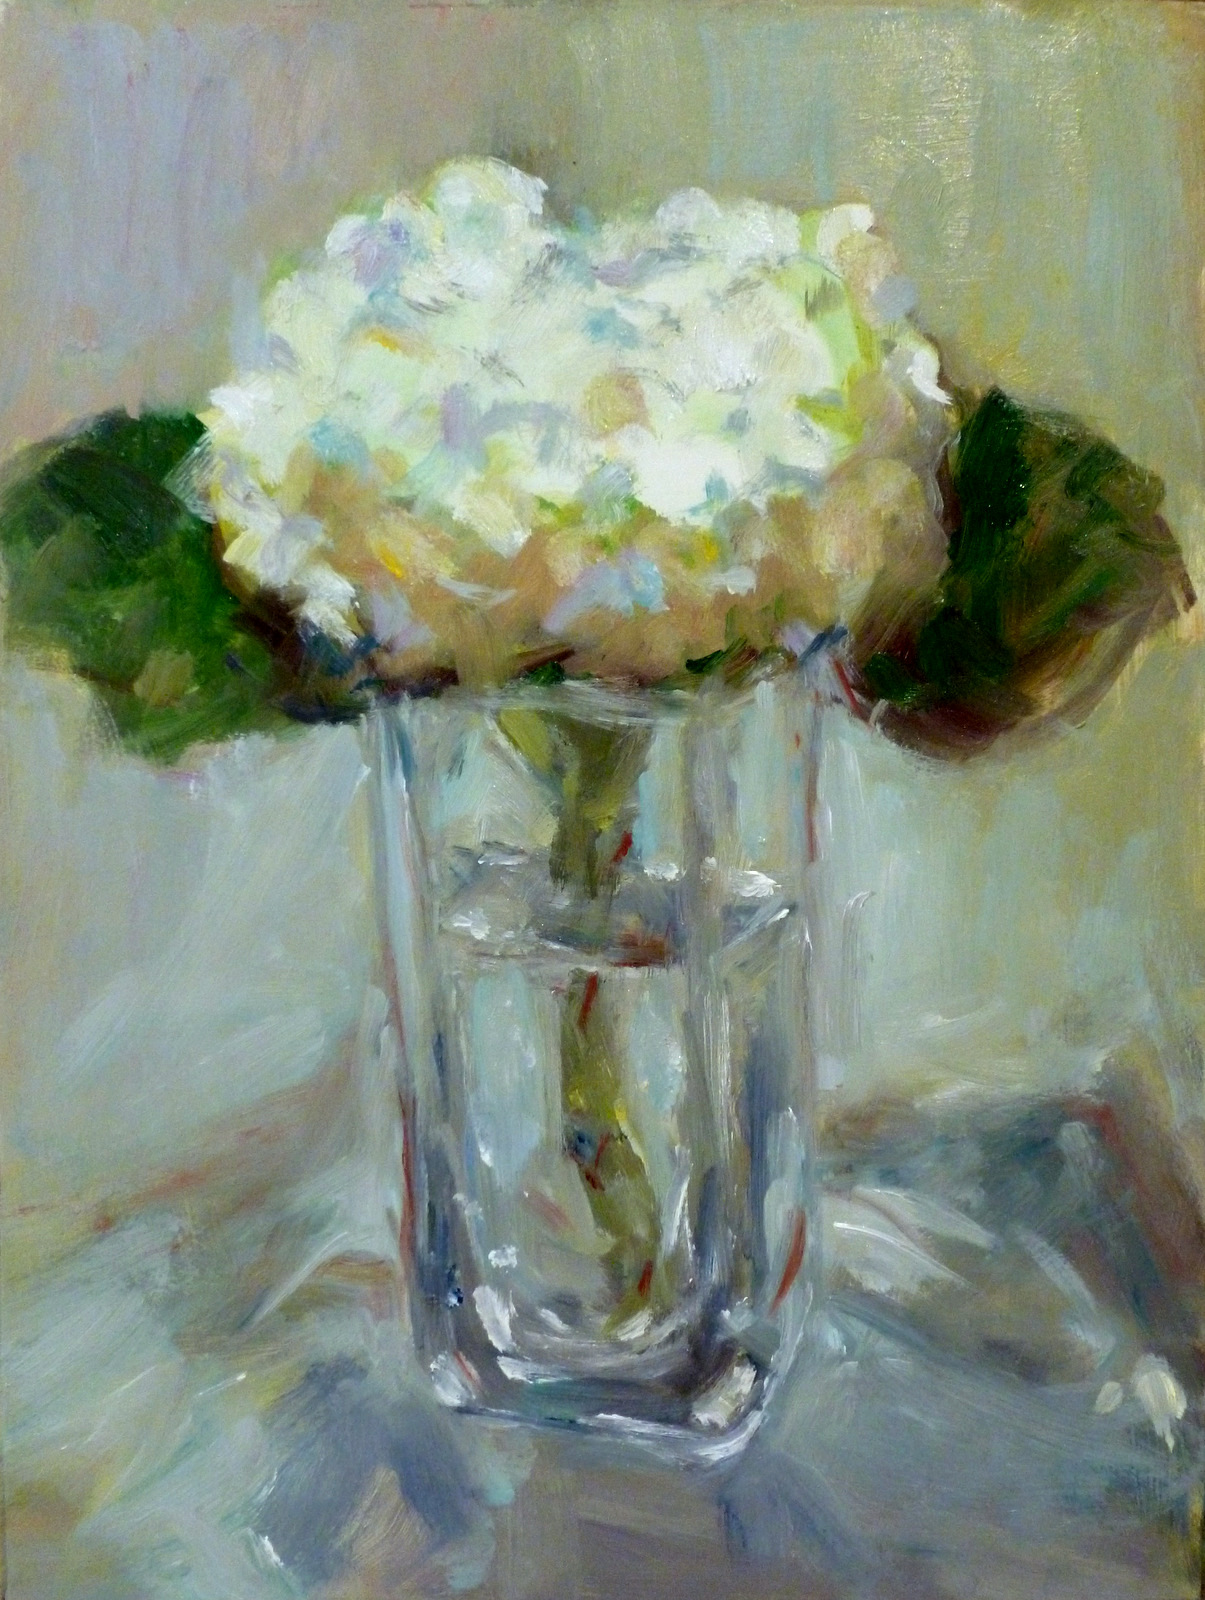 White Hydrangeas in Vase   Oil on Masonite  9x12""